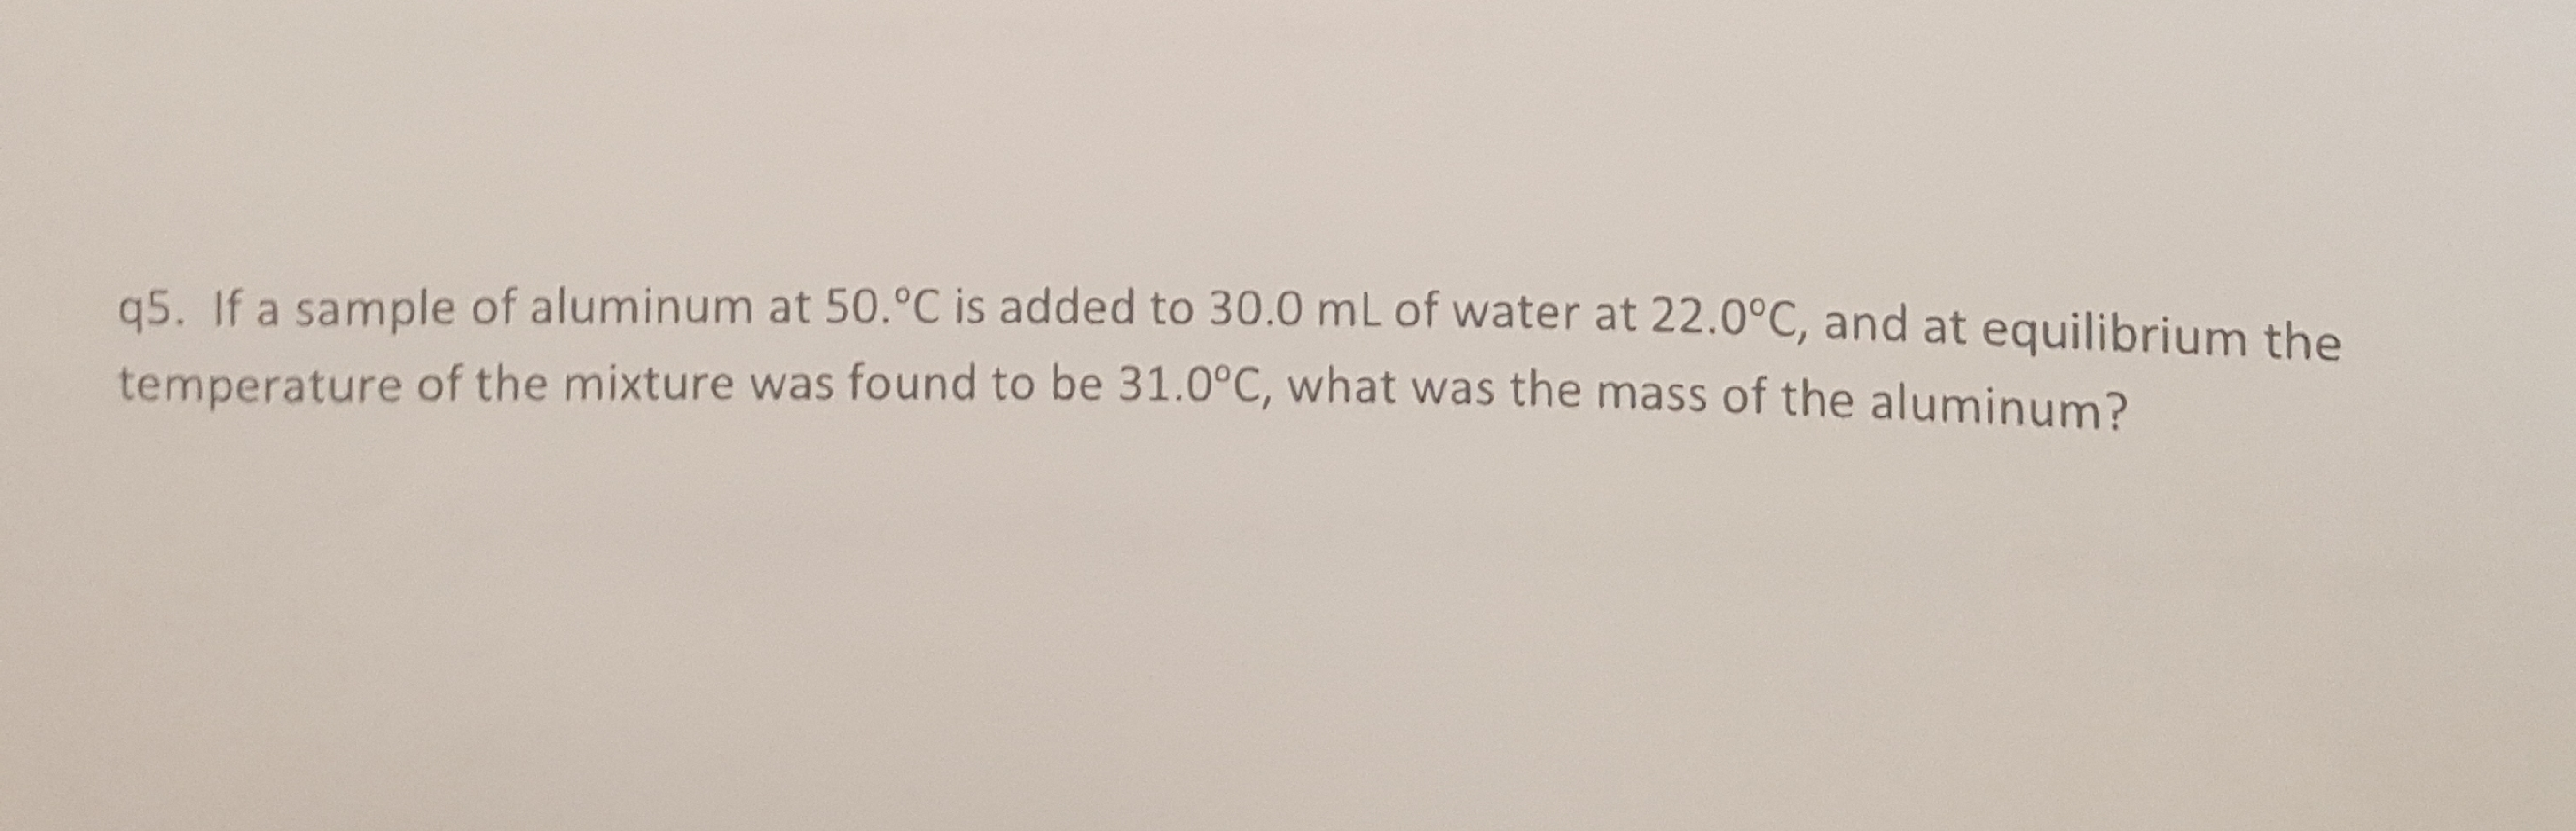 q5. If a sample of aluminum at 50.°C is added to 30.0 mL of water at 22.0°c, and at equilibrium th temperature of the mixture was found to be 31.0°C, what was the mass of the aluminum? the